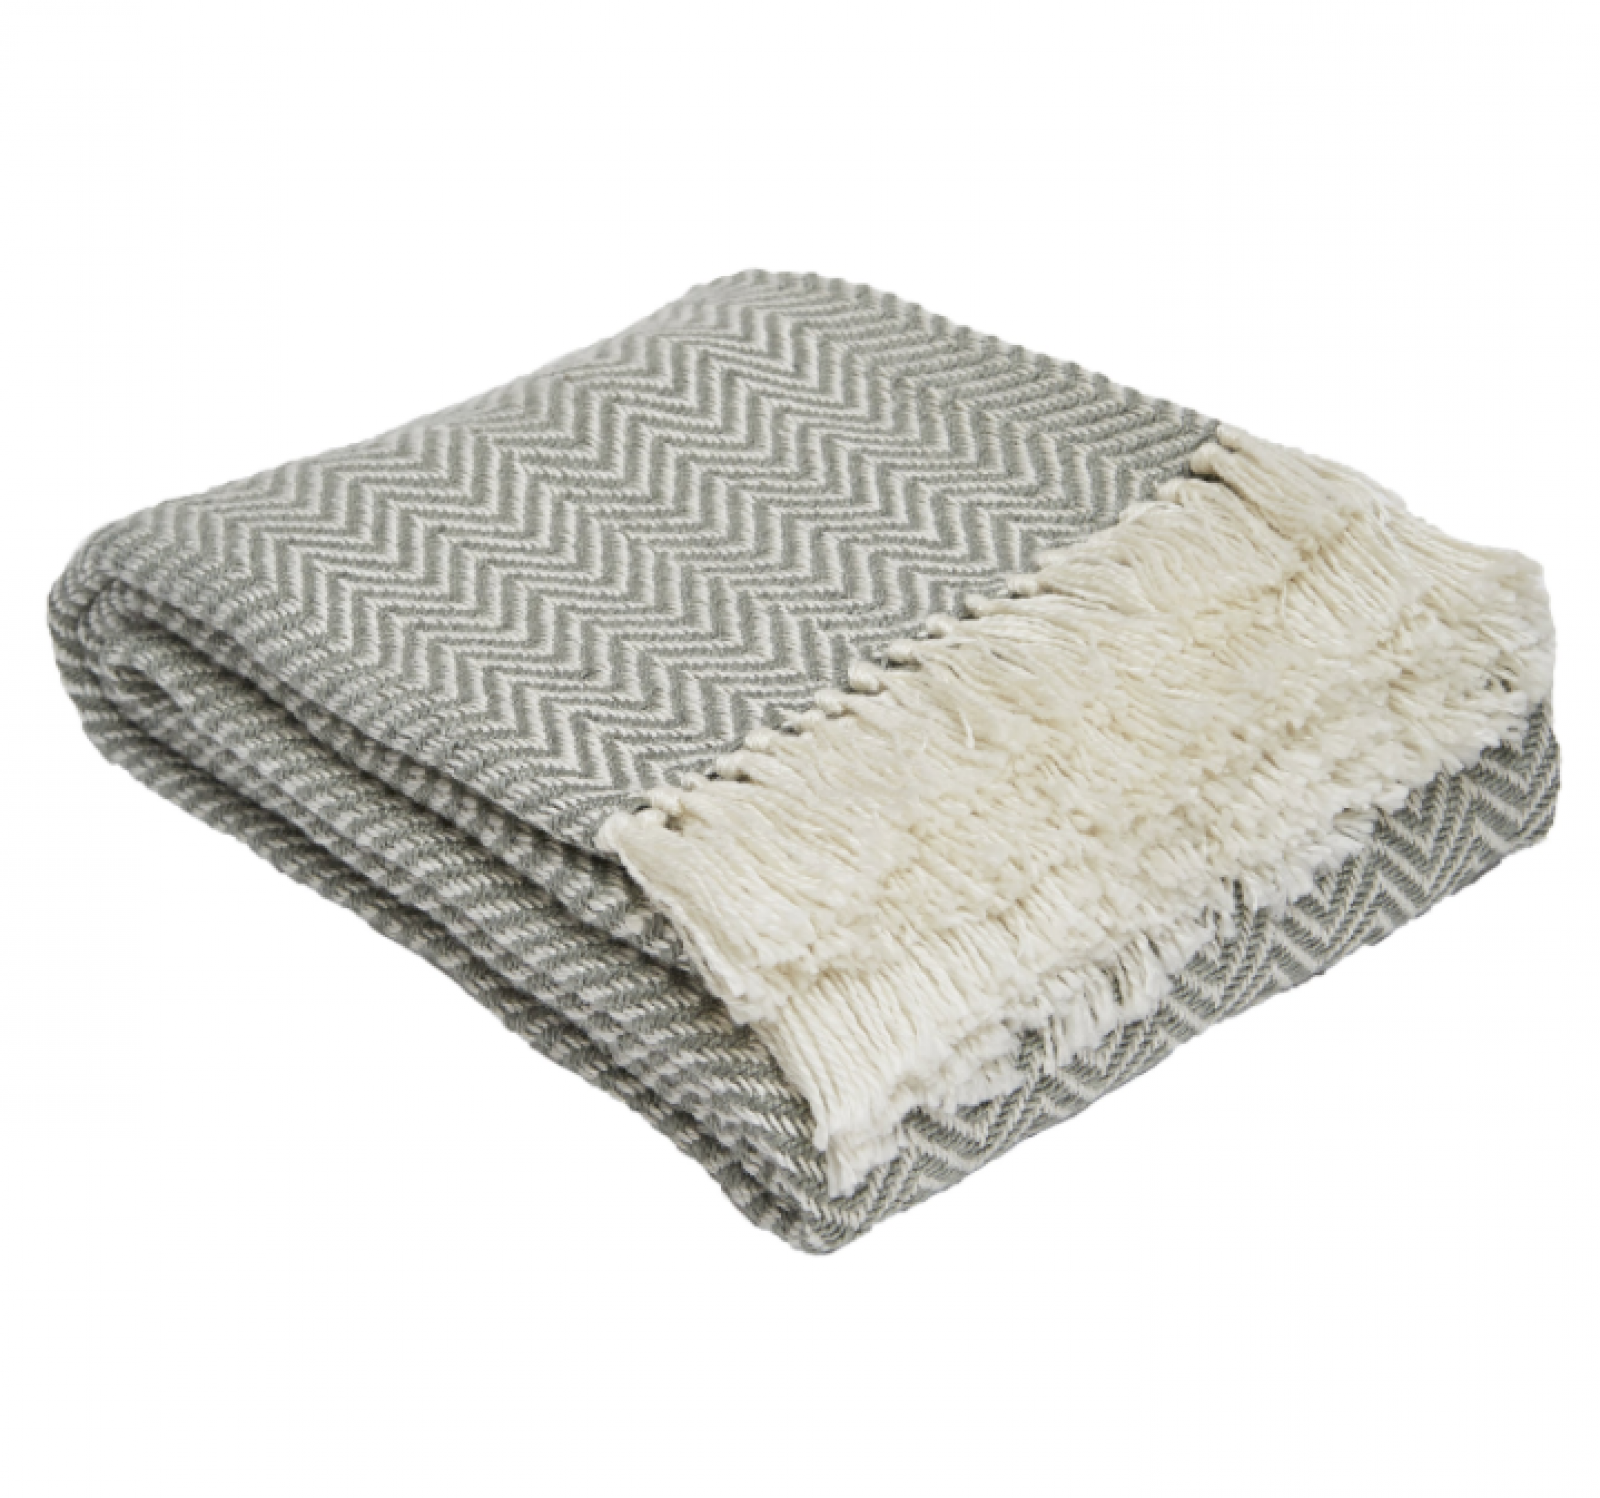 Grey Herringbone Blanket From Recycled Bottles